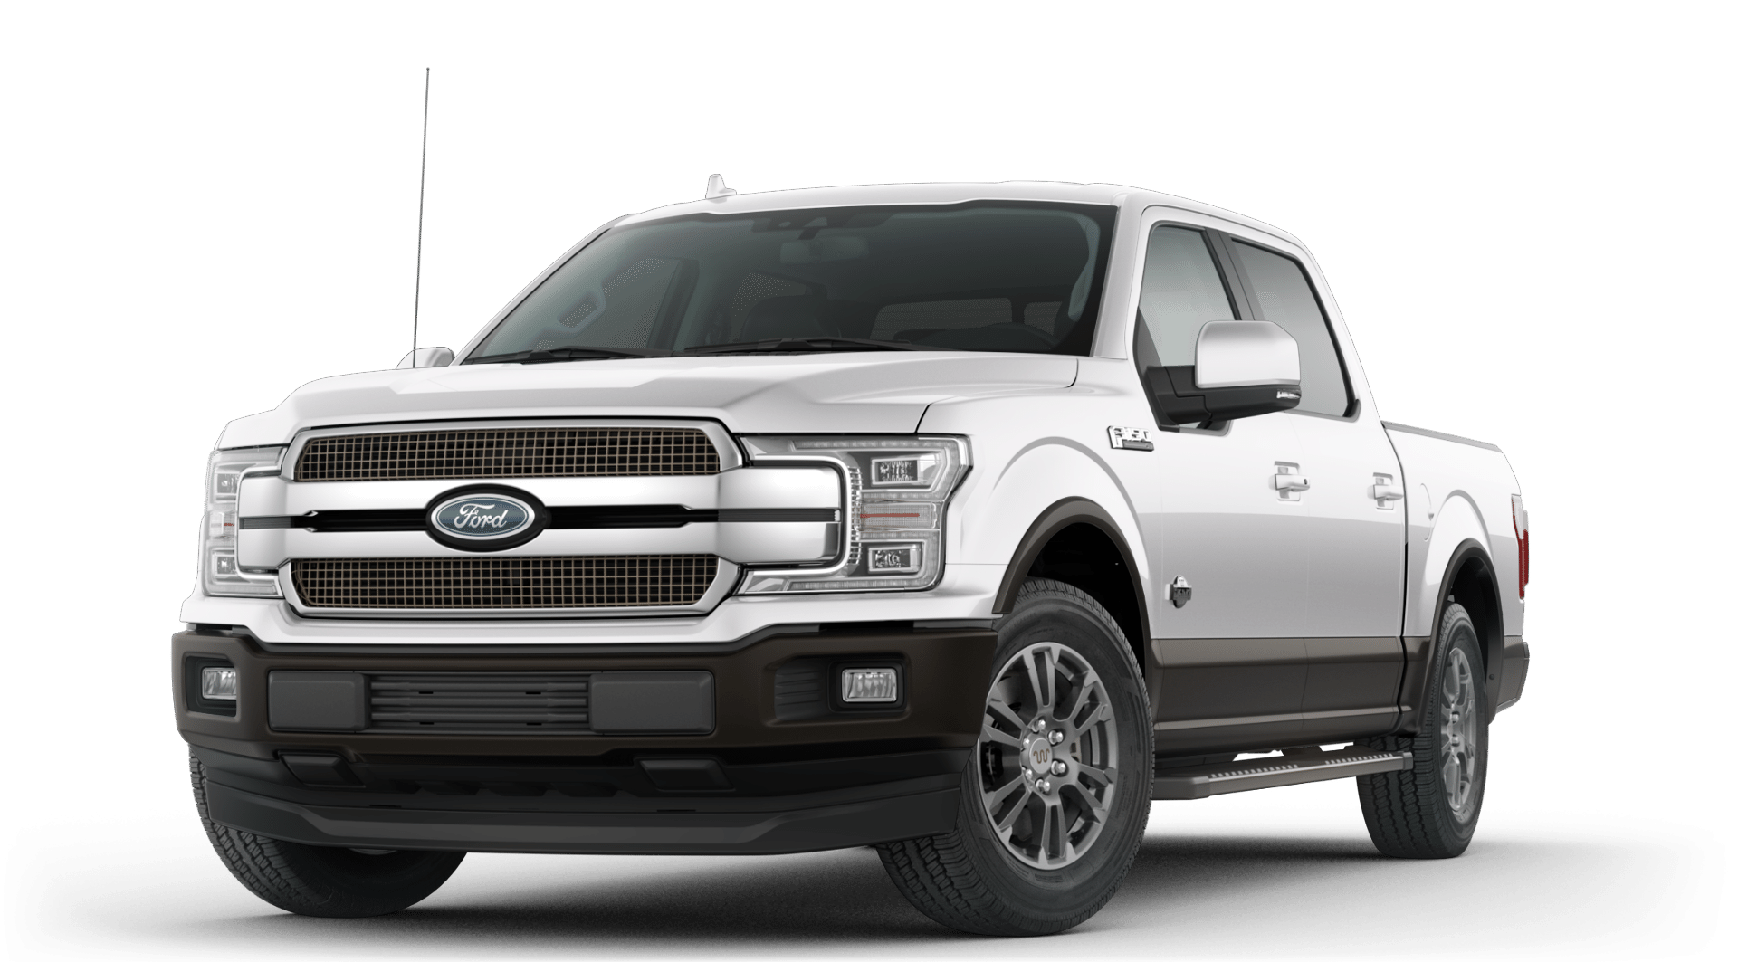 Ford F-150 2019 King Ranch